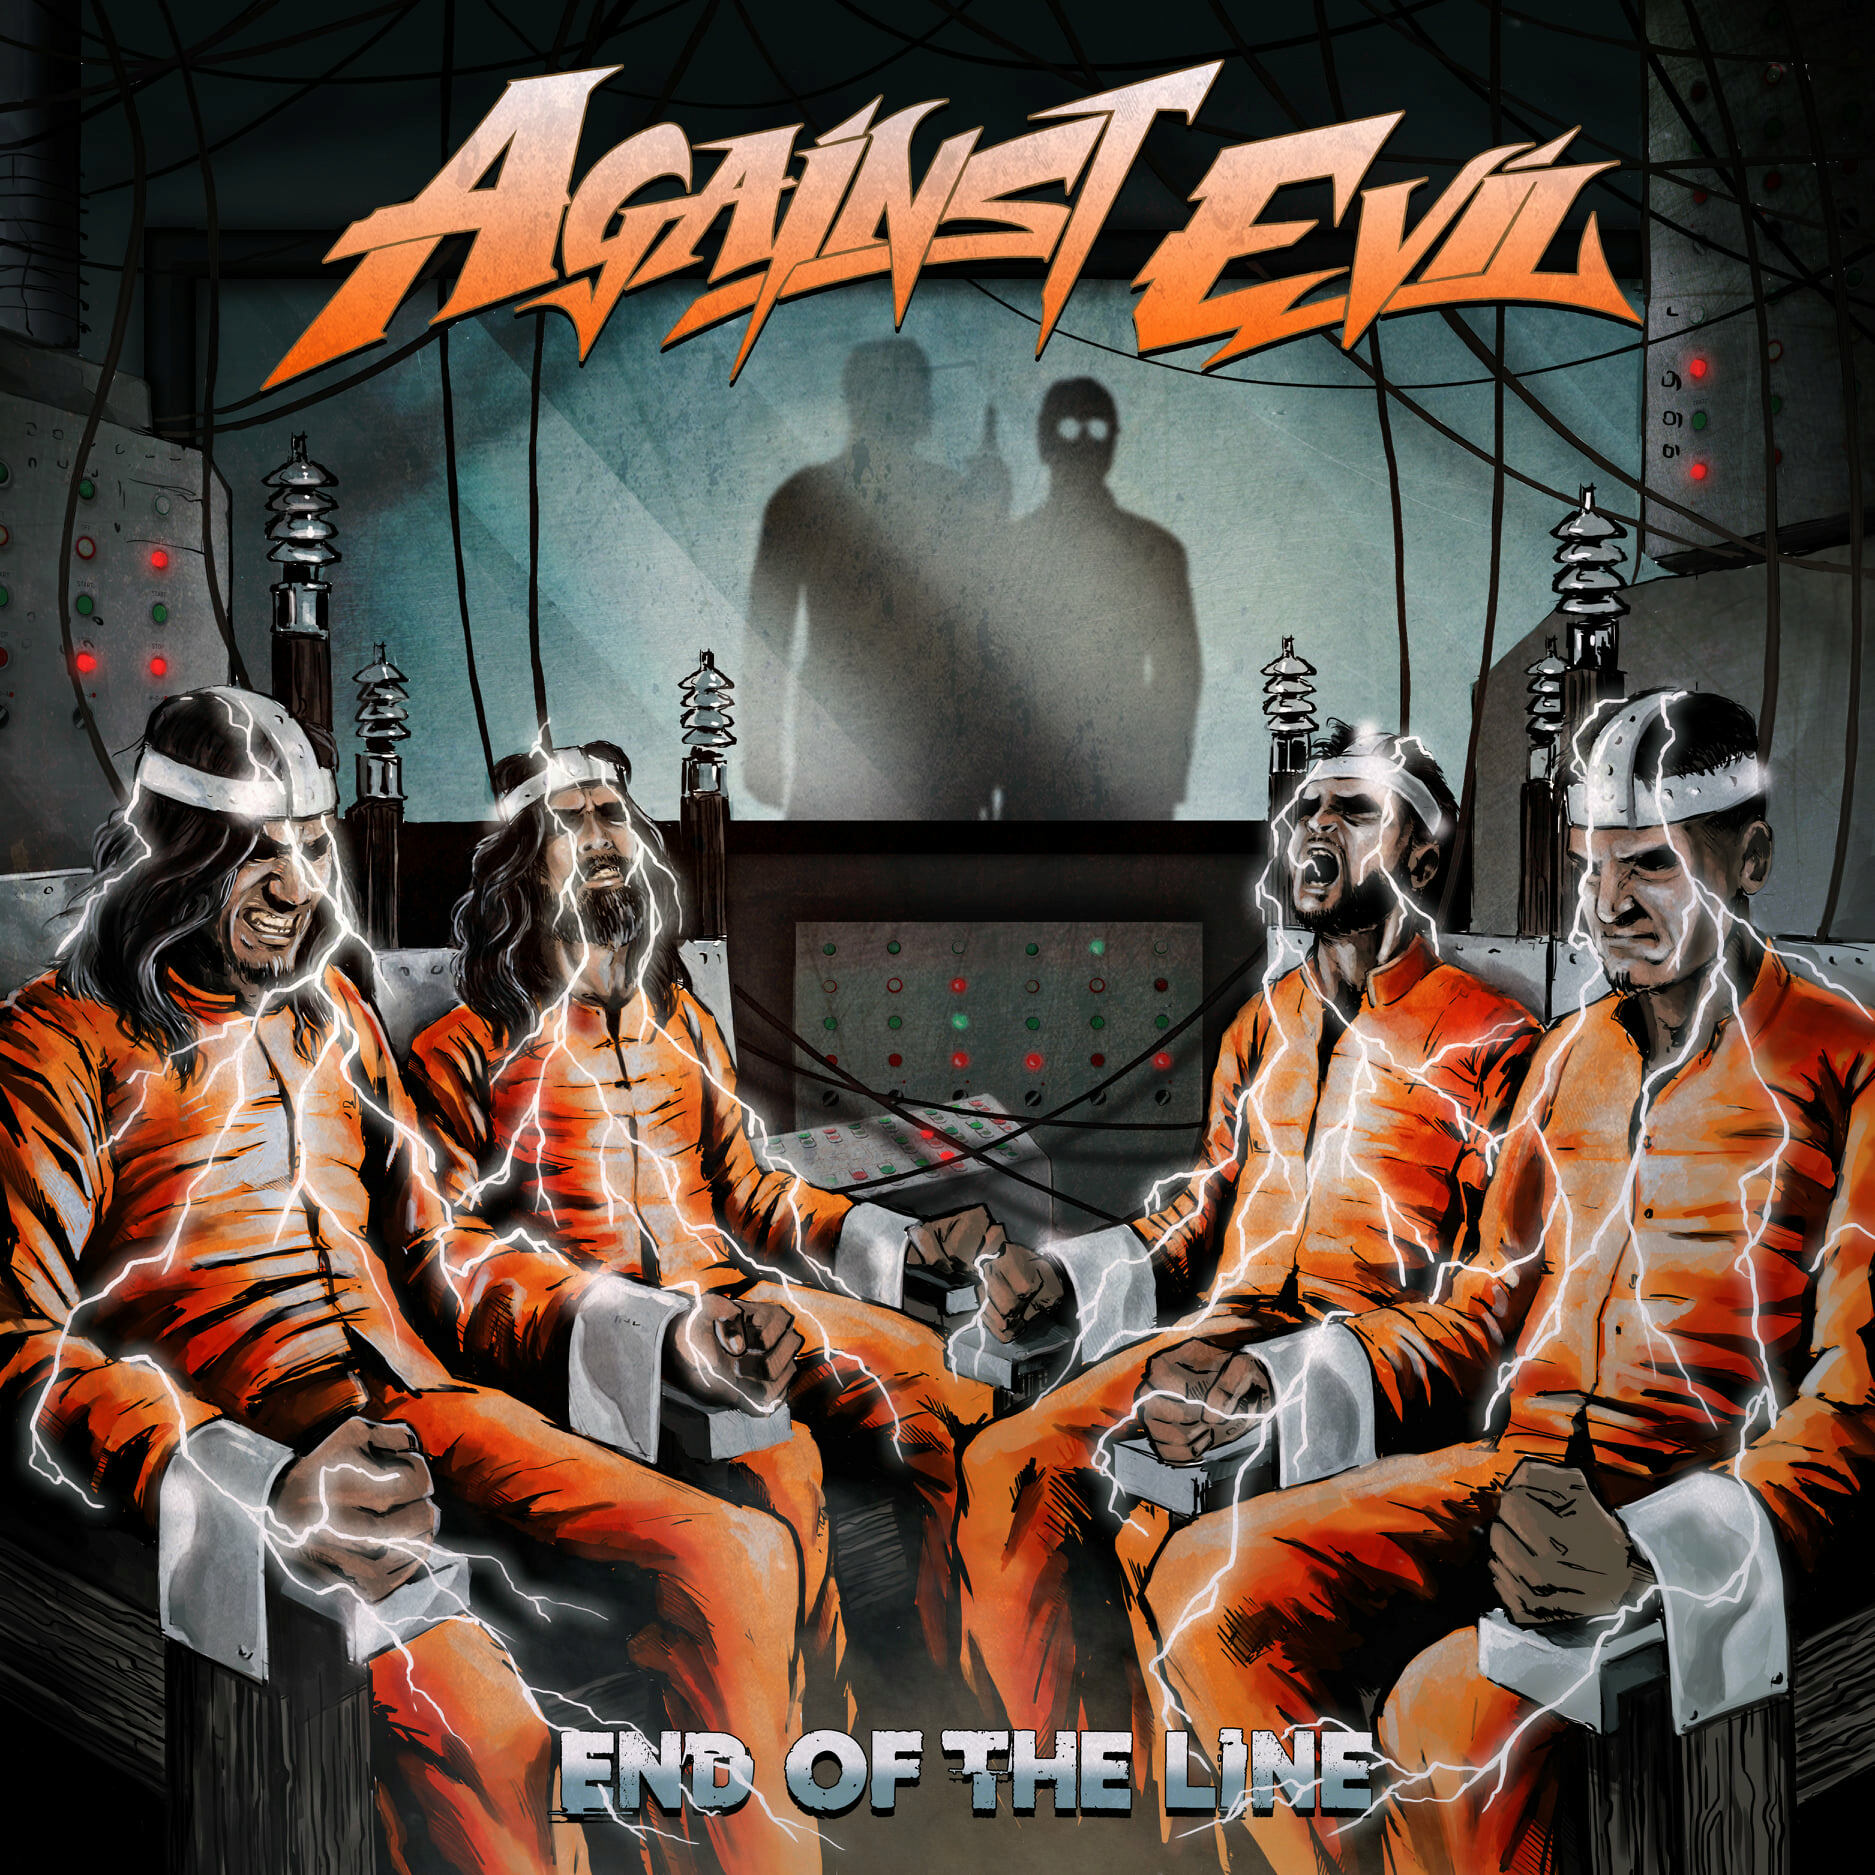 AGAINST EVIL End of the Line (2021) Heavy Metal INDE 15046610